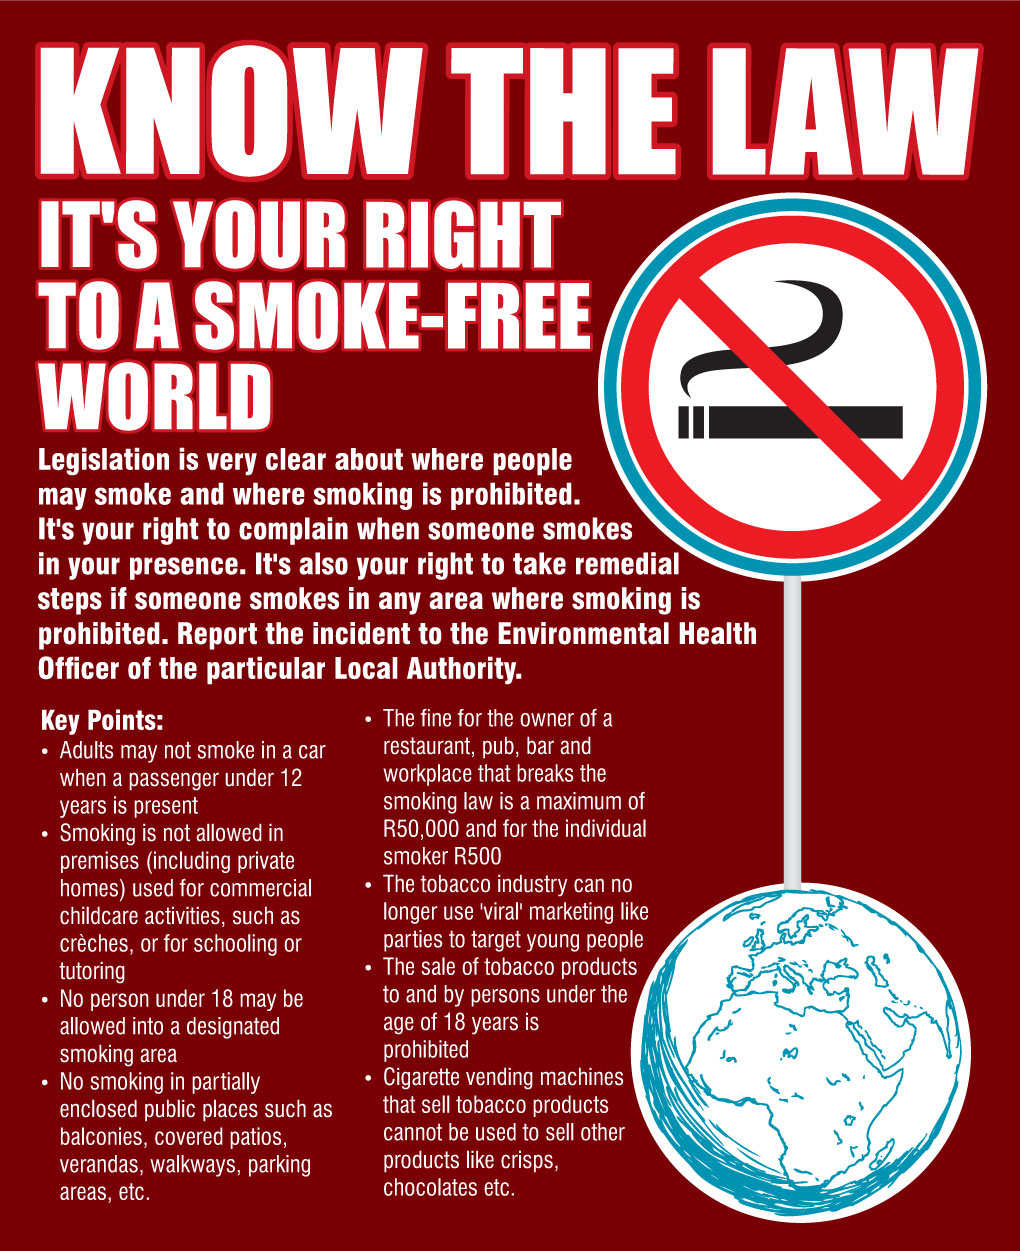 2016-Know-the-law-smoke-free